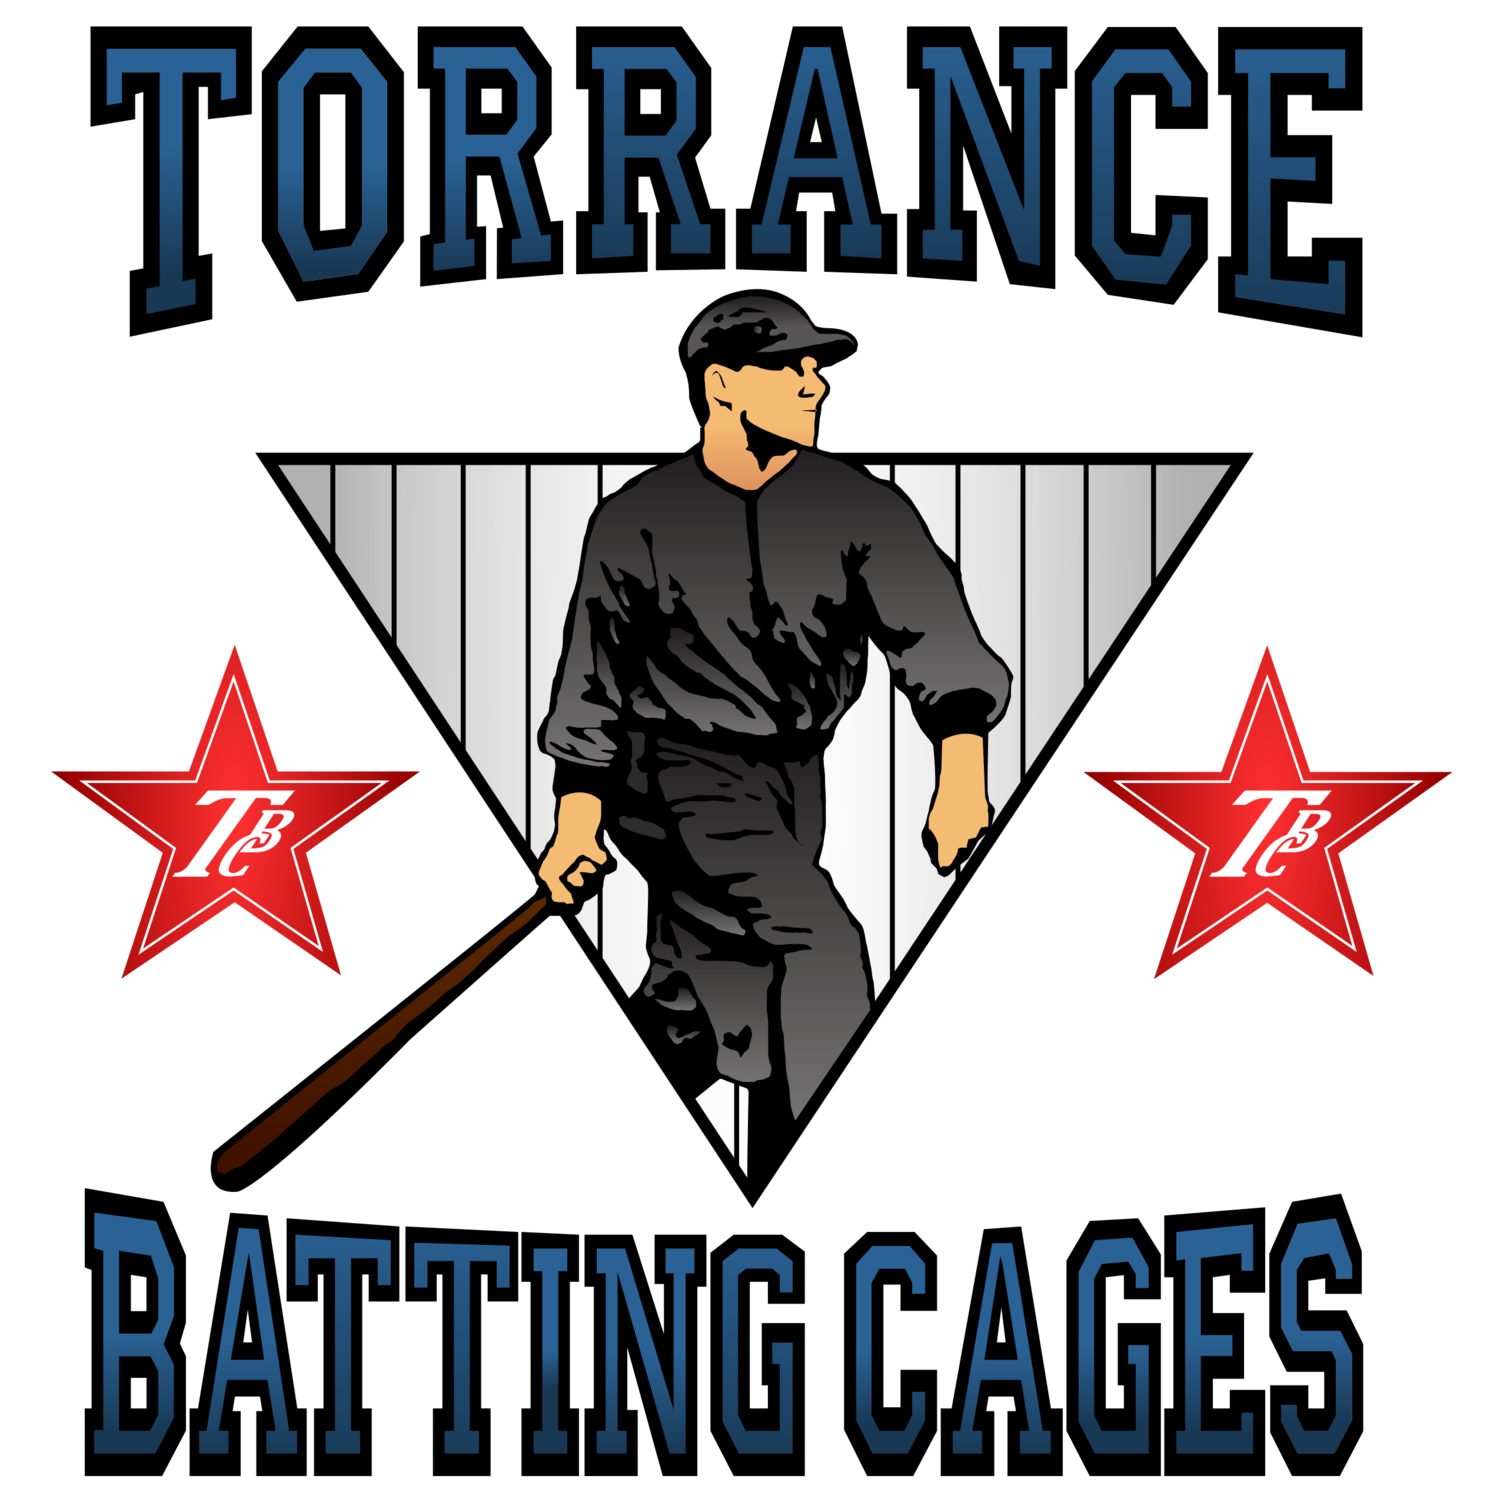 Torrance Batting Cages